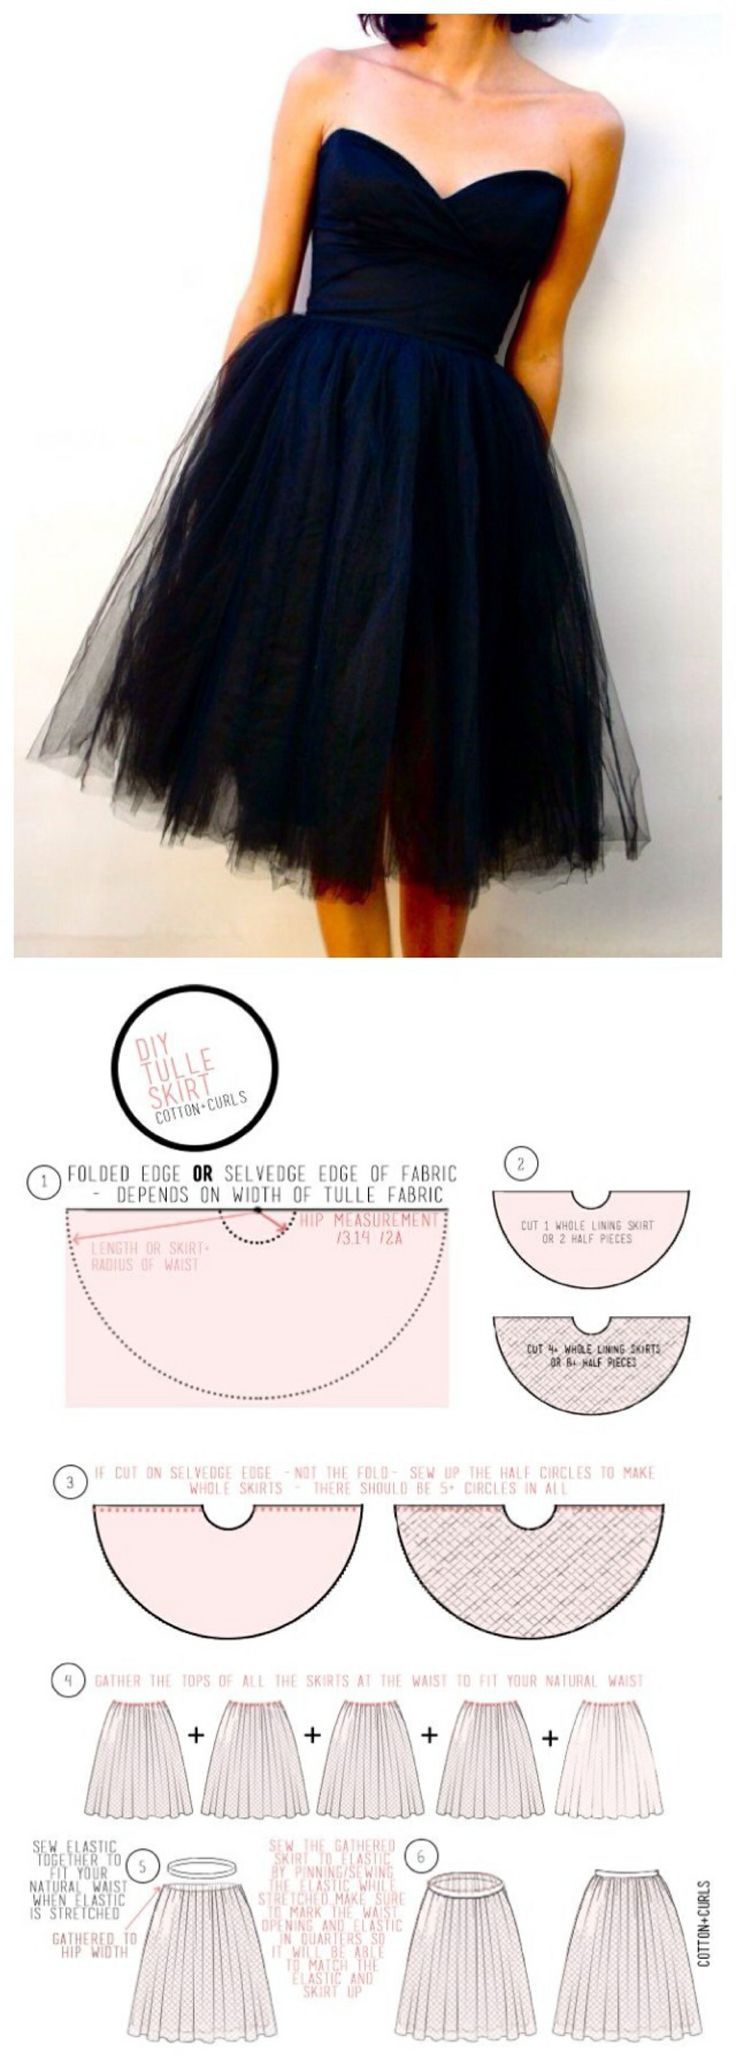 DIY tulle skirt - Gorgeous skirt sewing pattern for special occasions or just…